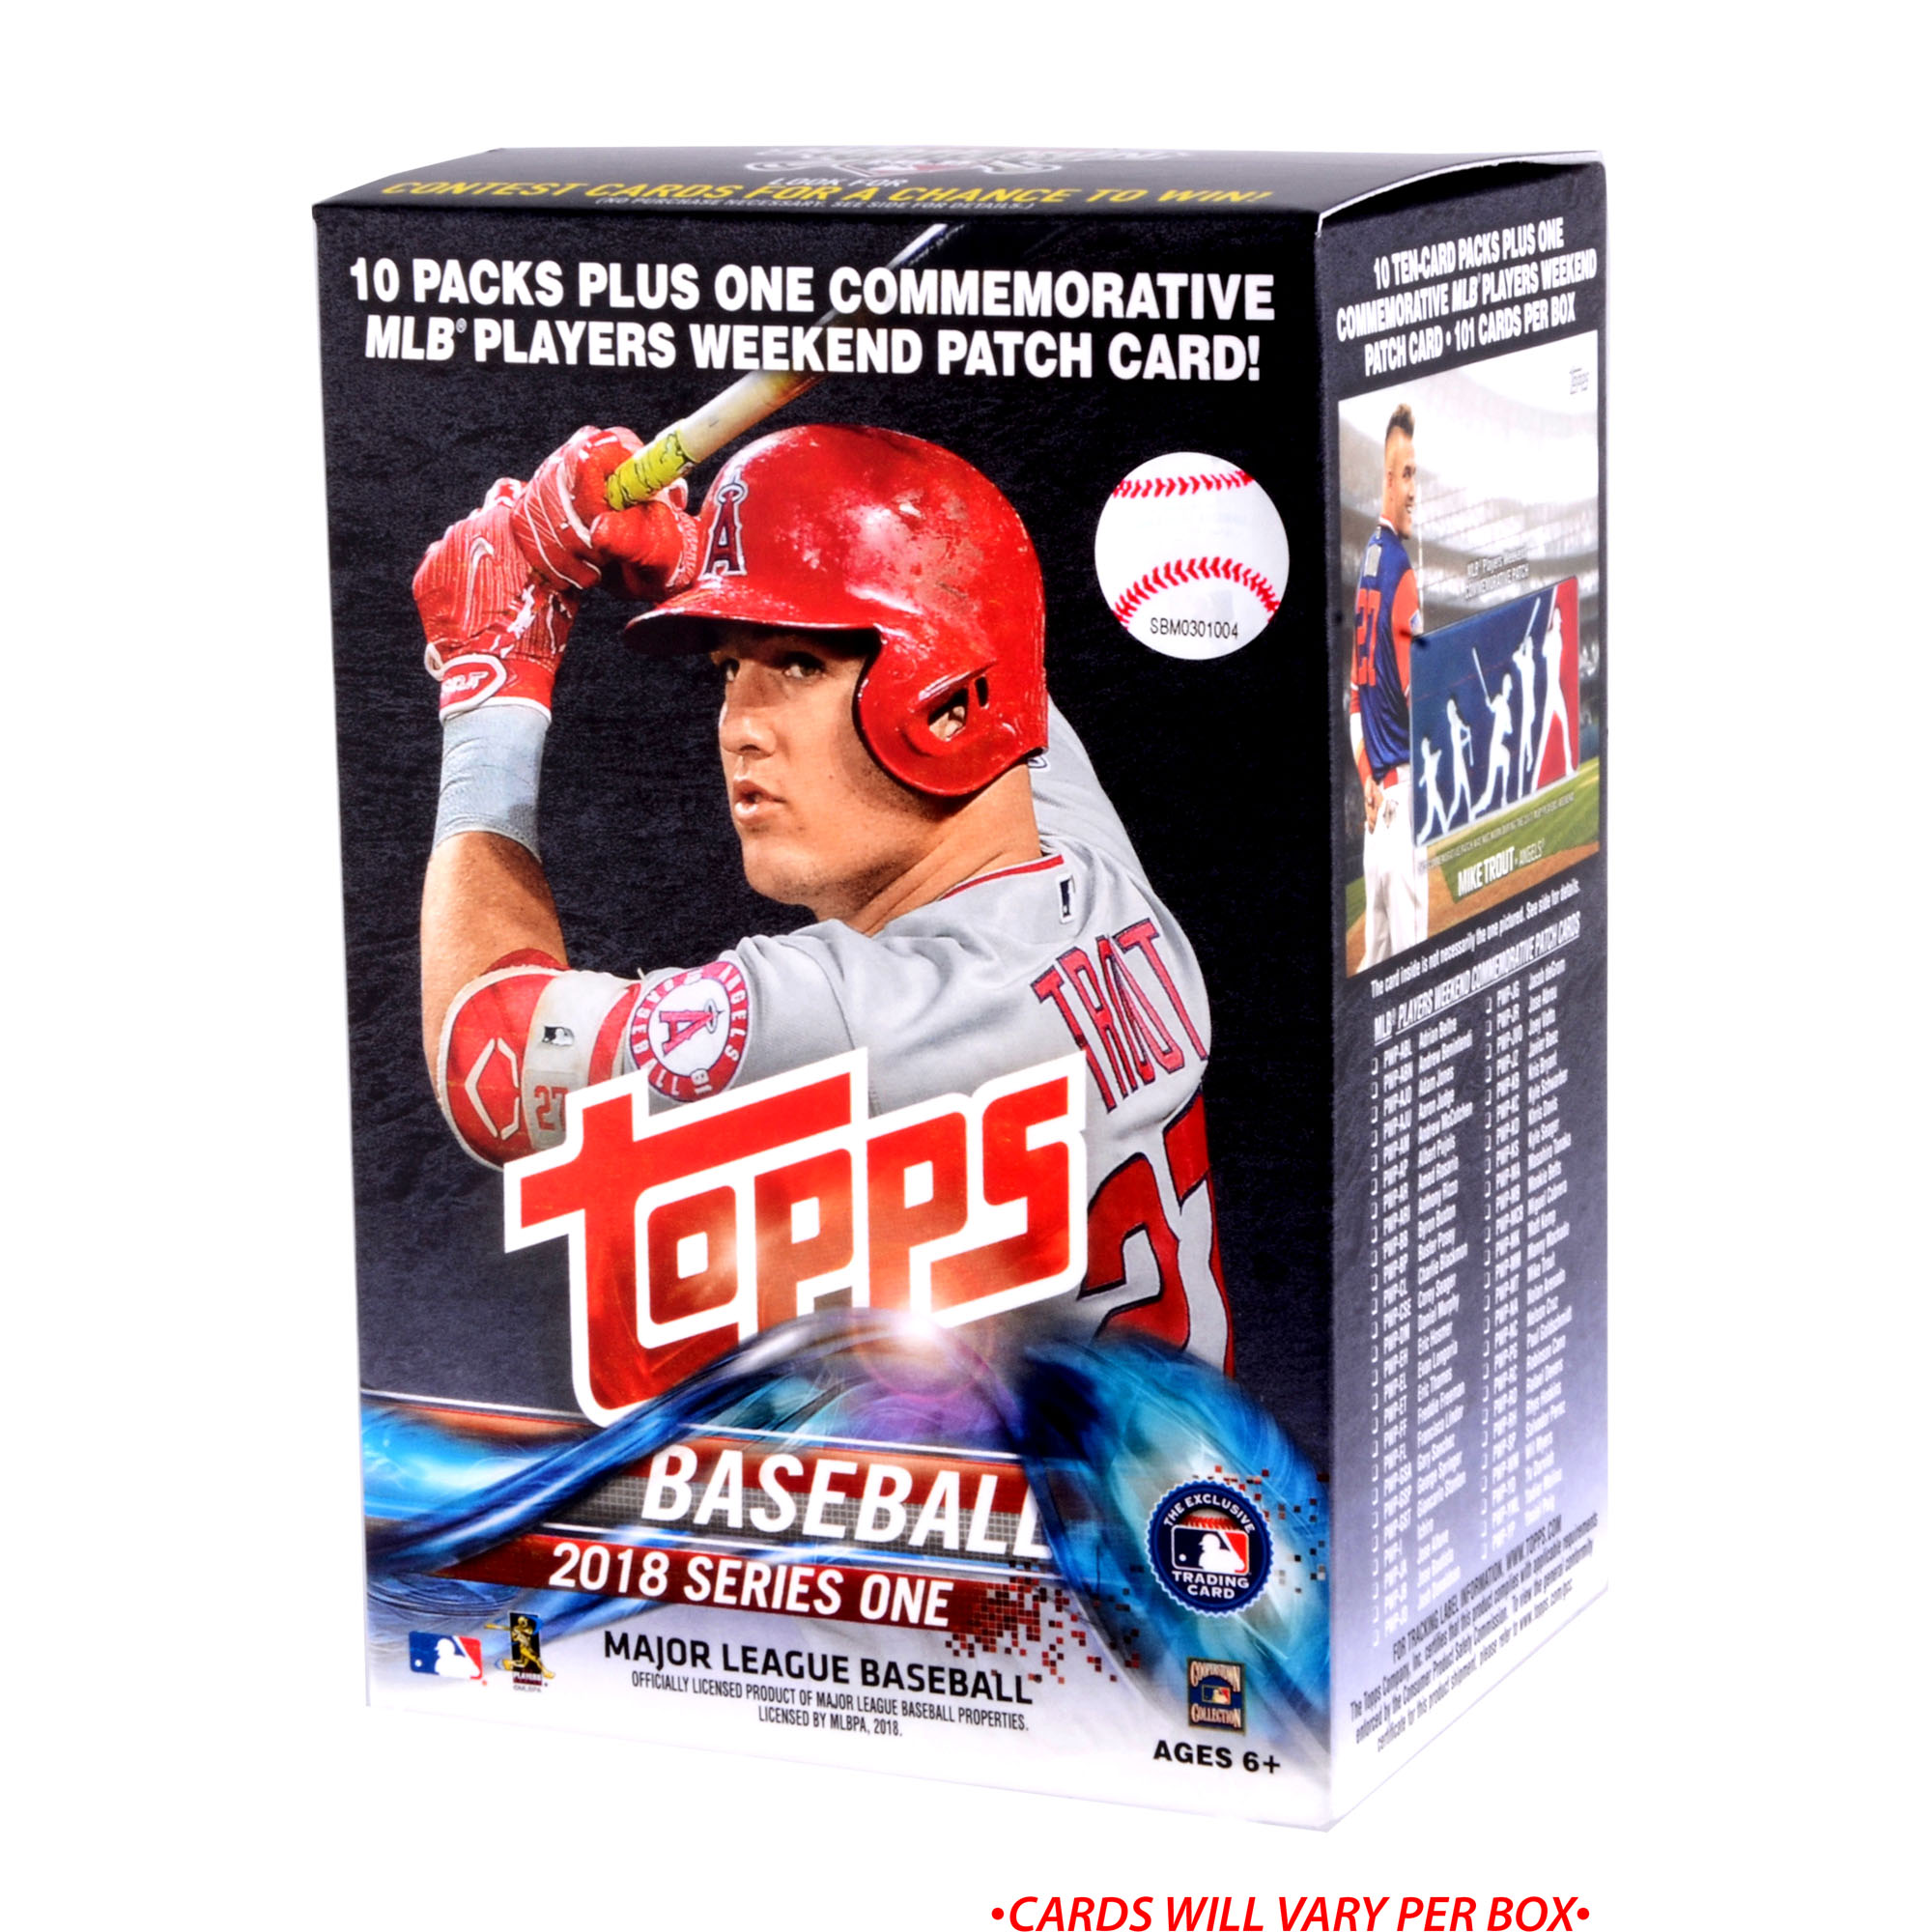 2018 Topps Baseball Series 1 Factory Sealed 10 Pack Blaster Box - No Size